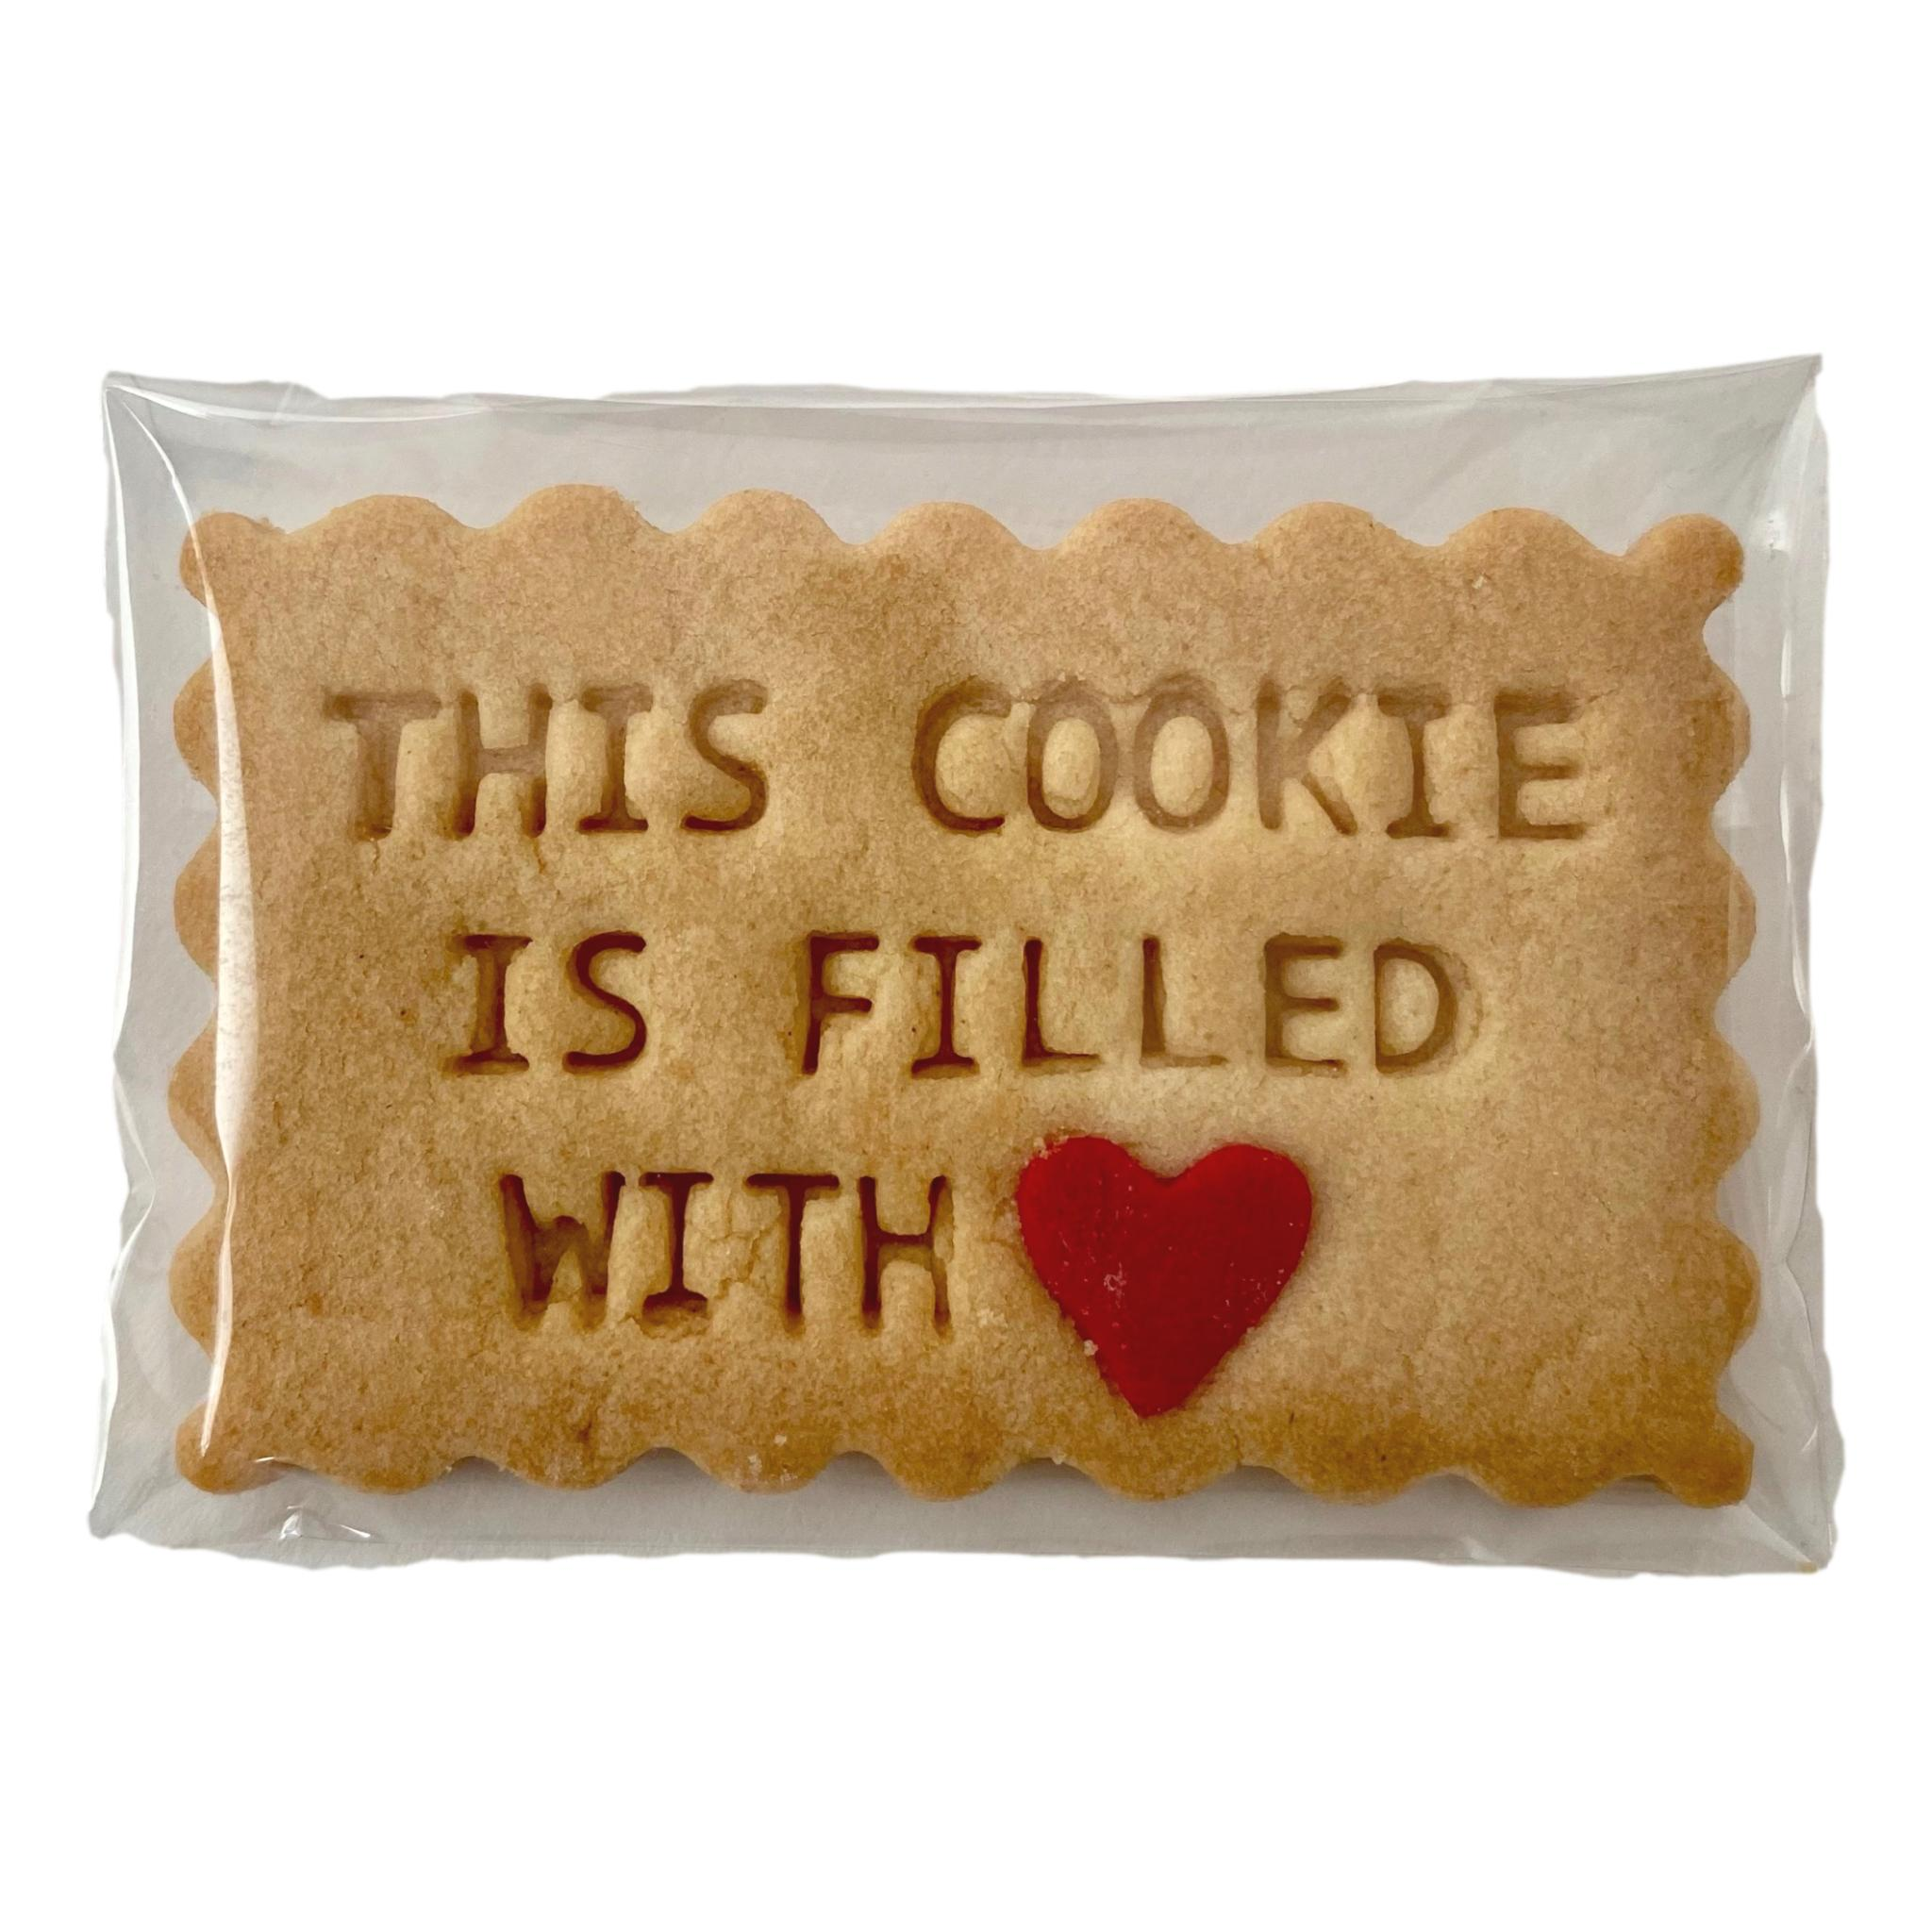 This Cookie Is Filled With Love - Handmade Gifts